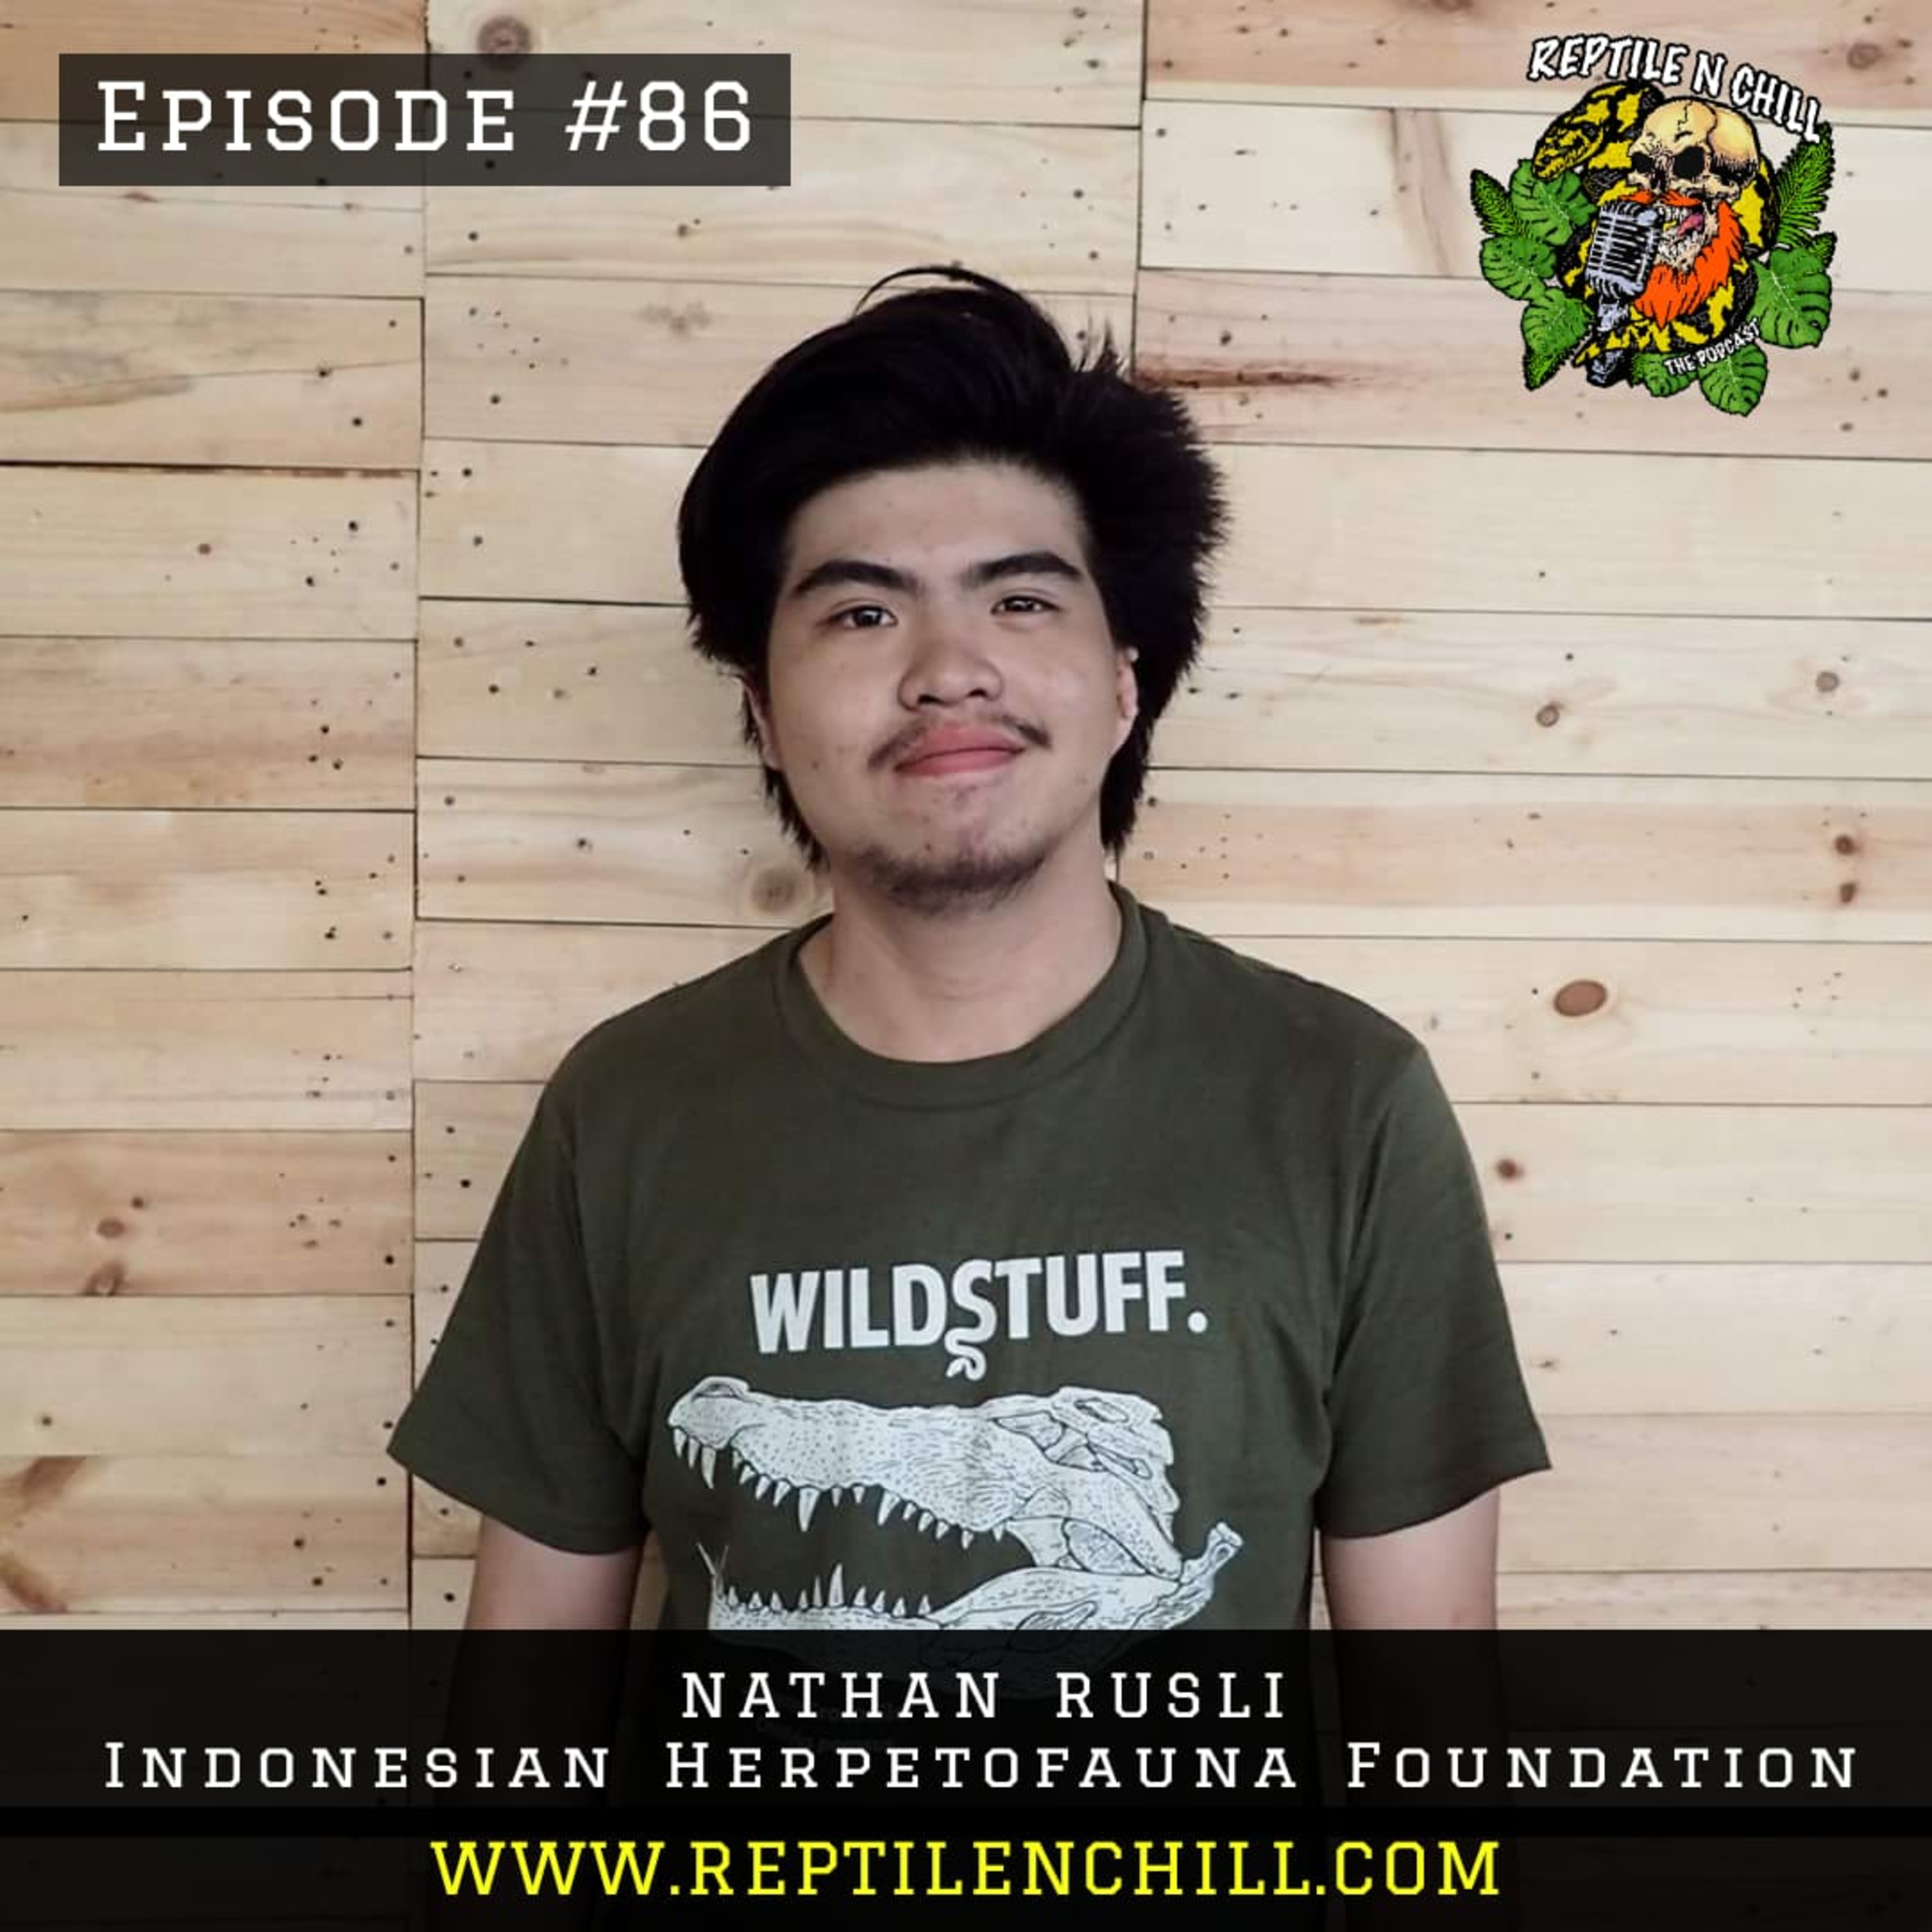 Nathan Rusli from Indonesian Herpetofauna Foundation - 86 Reptile n Chill